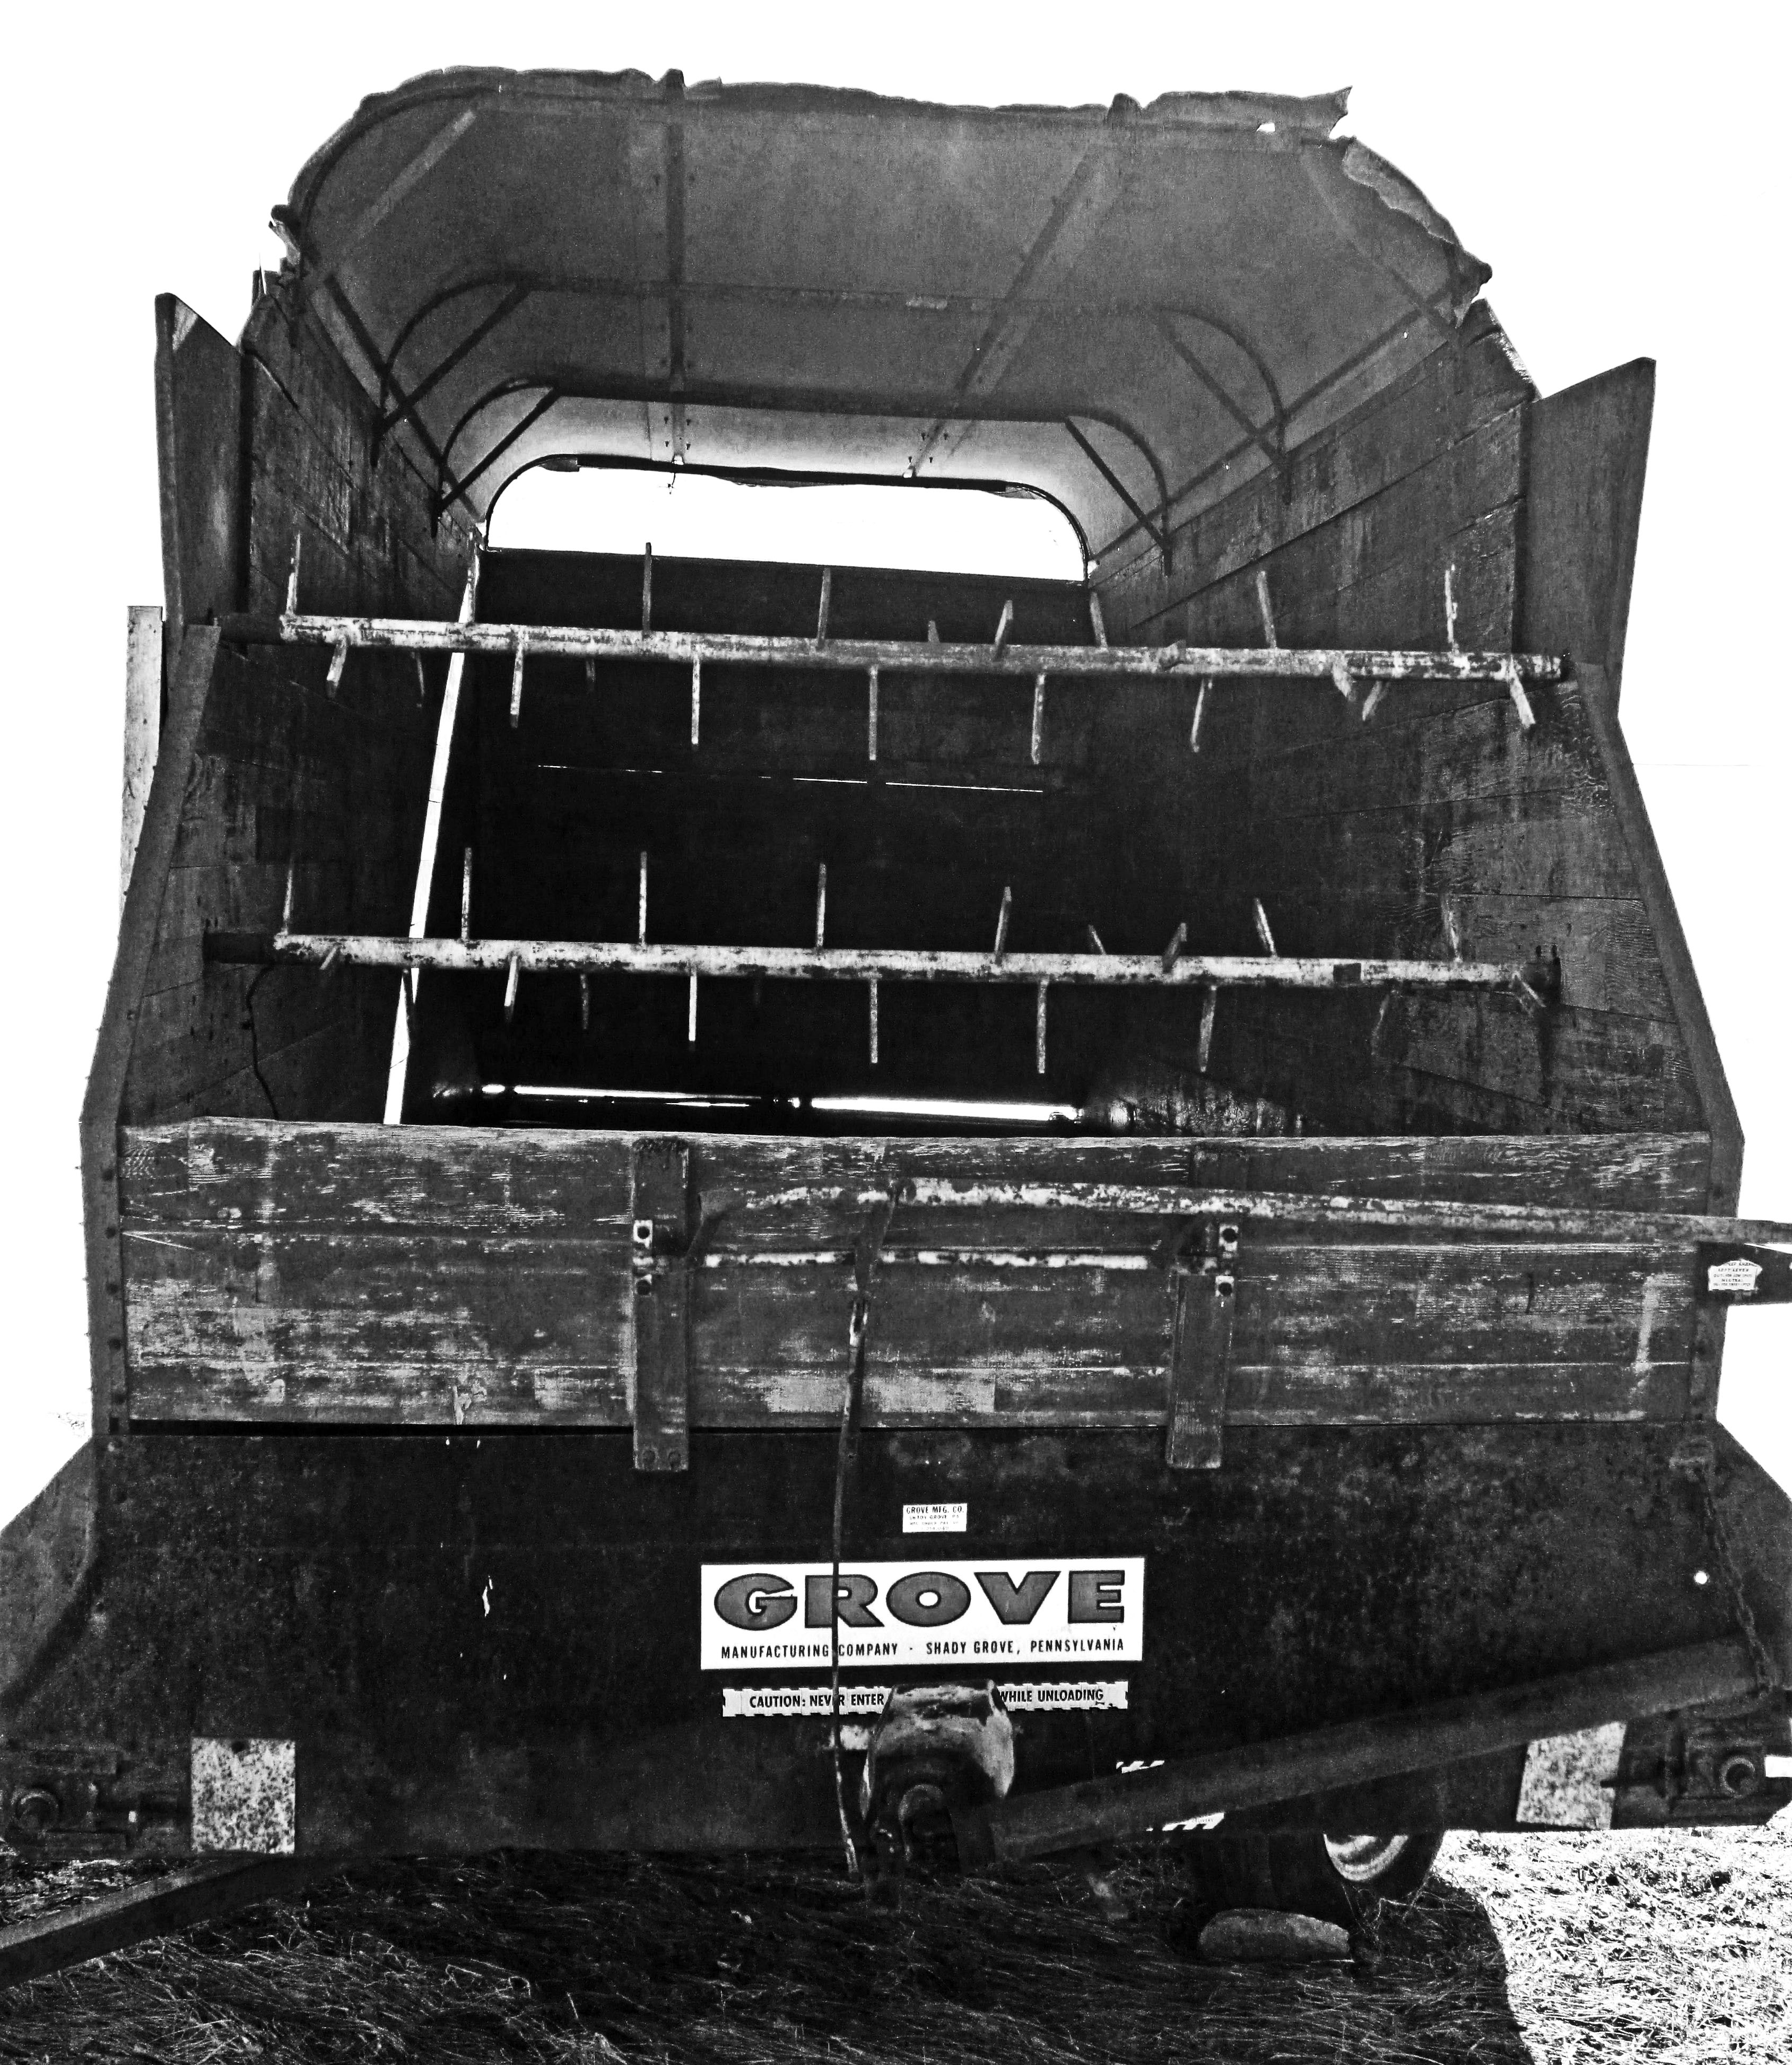 Black & White Of Old 20 Foot Grove Silage Farm Wagon